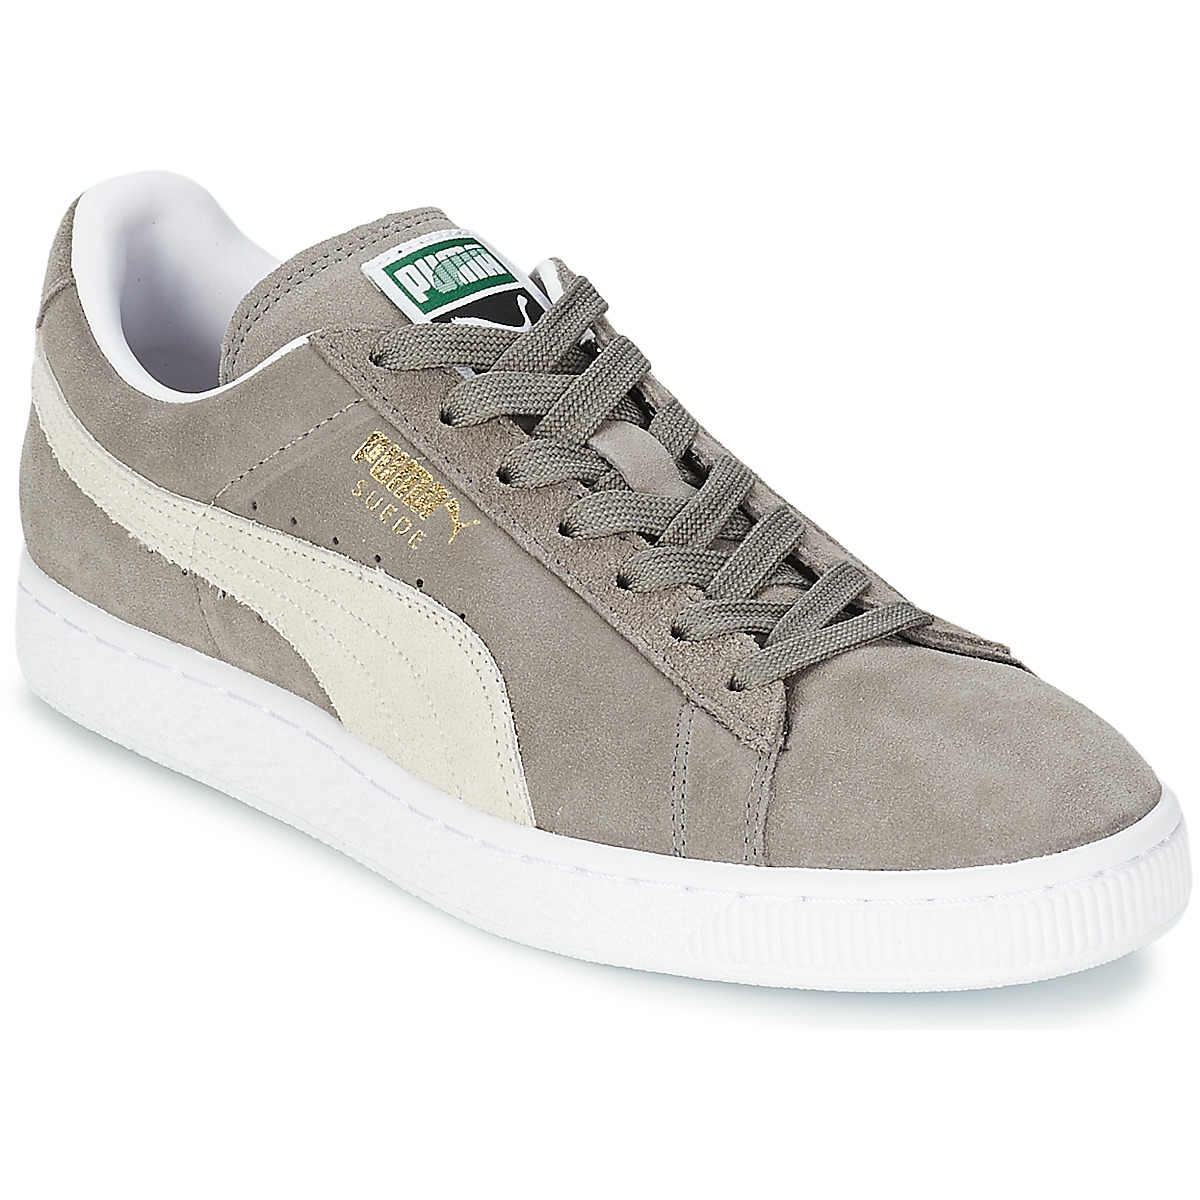 a63b44b1412 Puma SUEDE CLASSIC Grey - Free delivery | Spartoo UK ! - Shoes Low ...